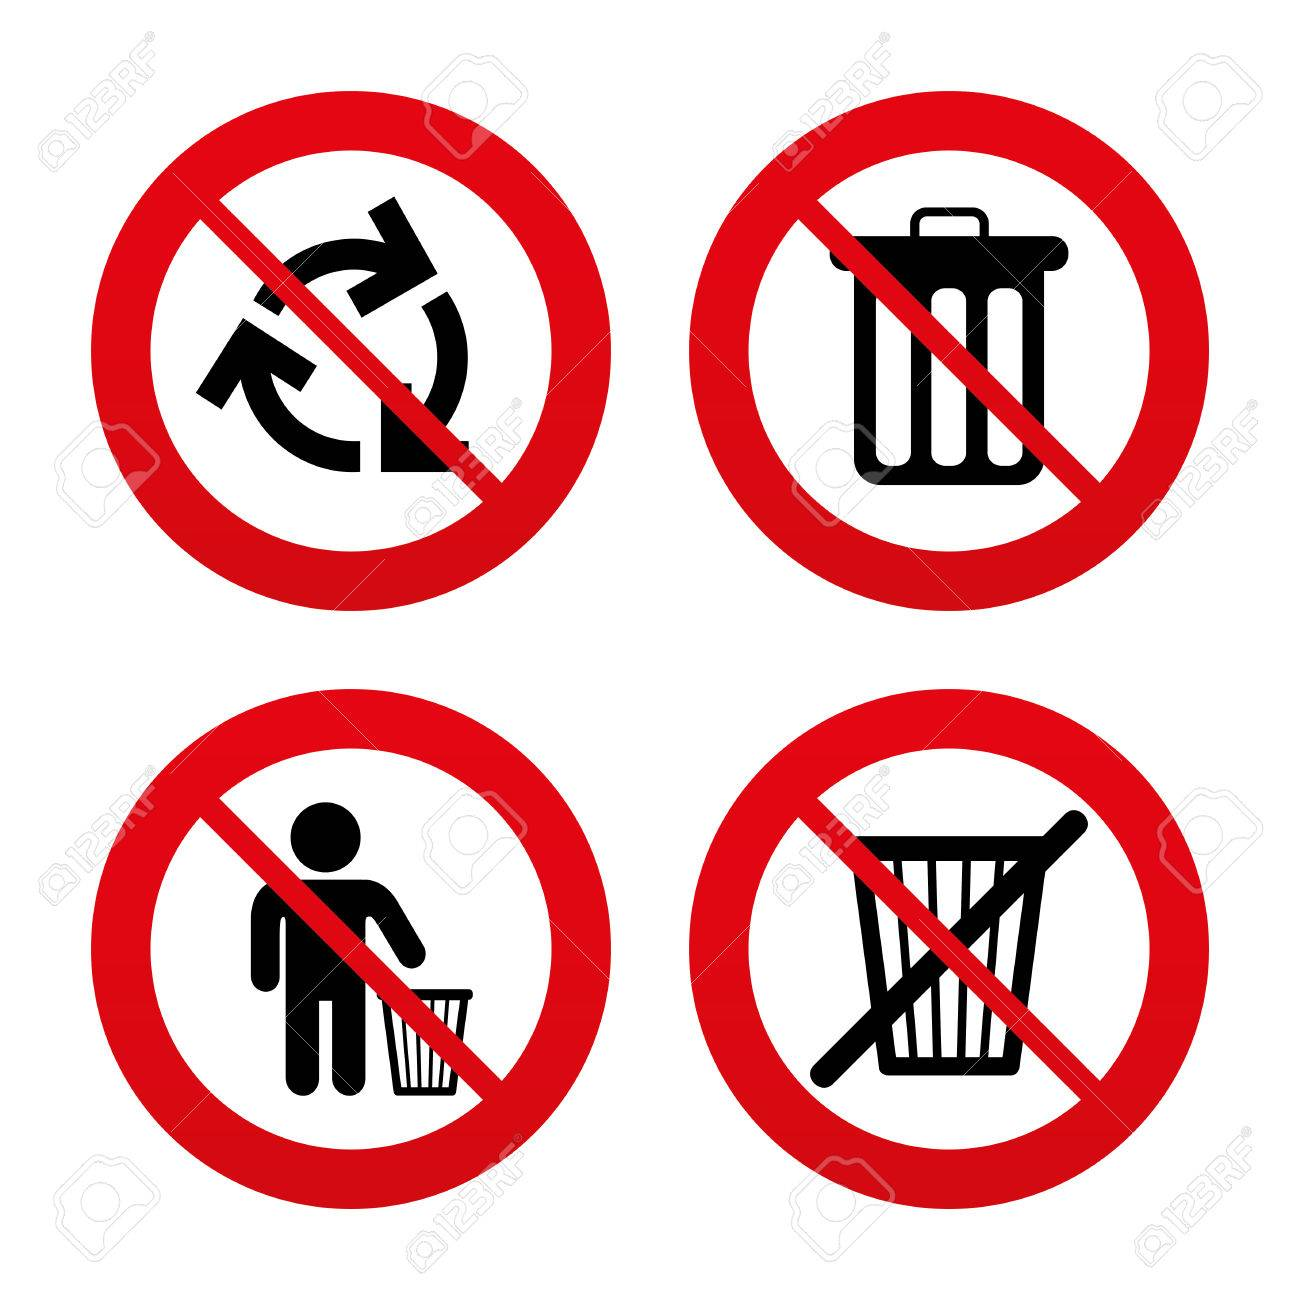 No Ban Or Stop Signs Recycle Bin Icons Reuse Or Reduce Symbols